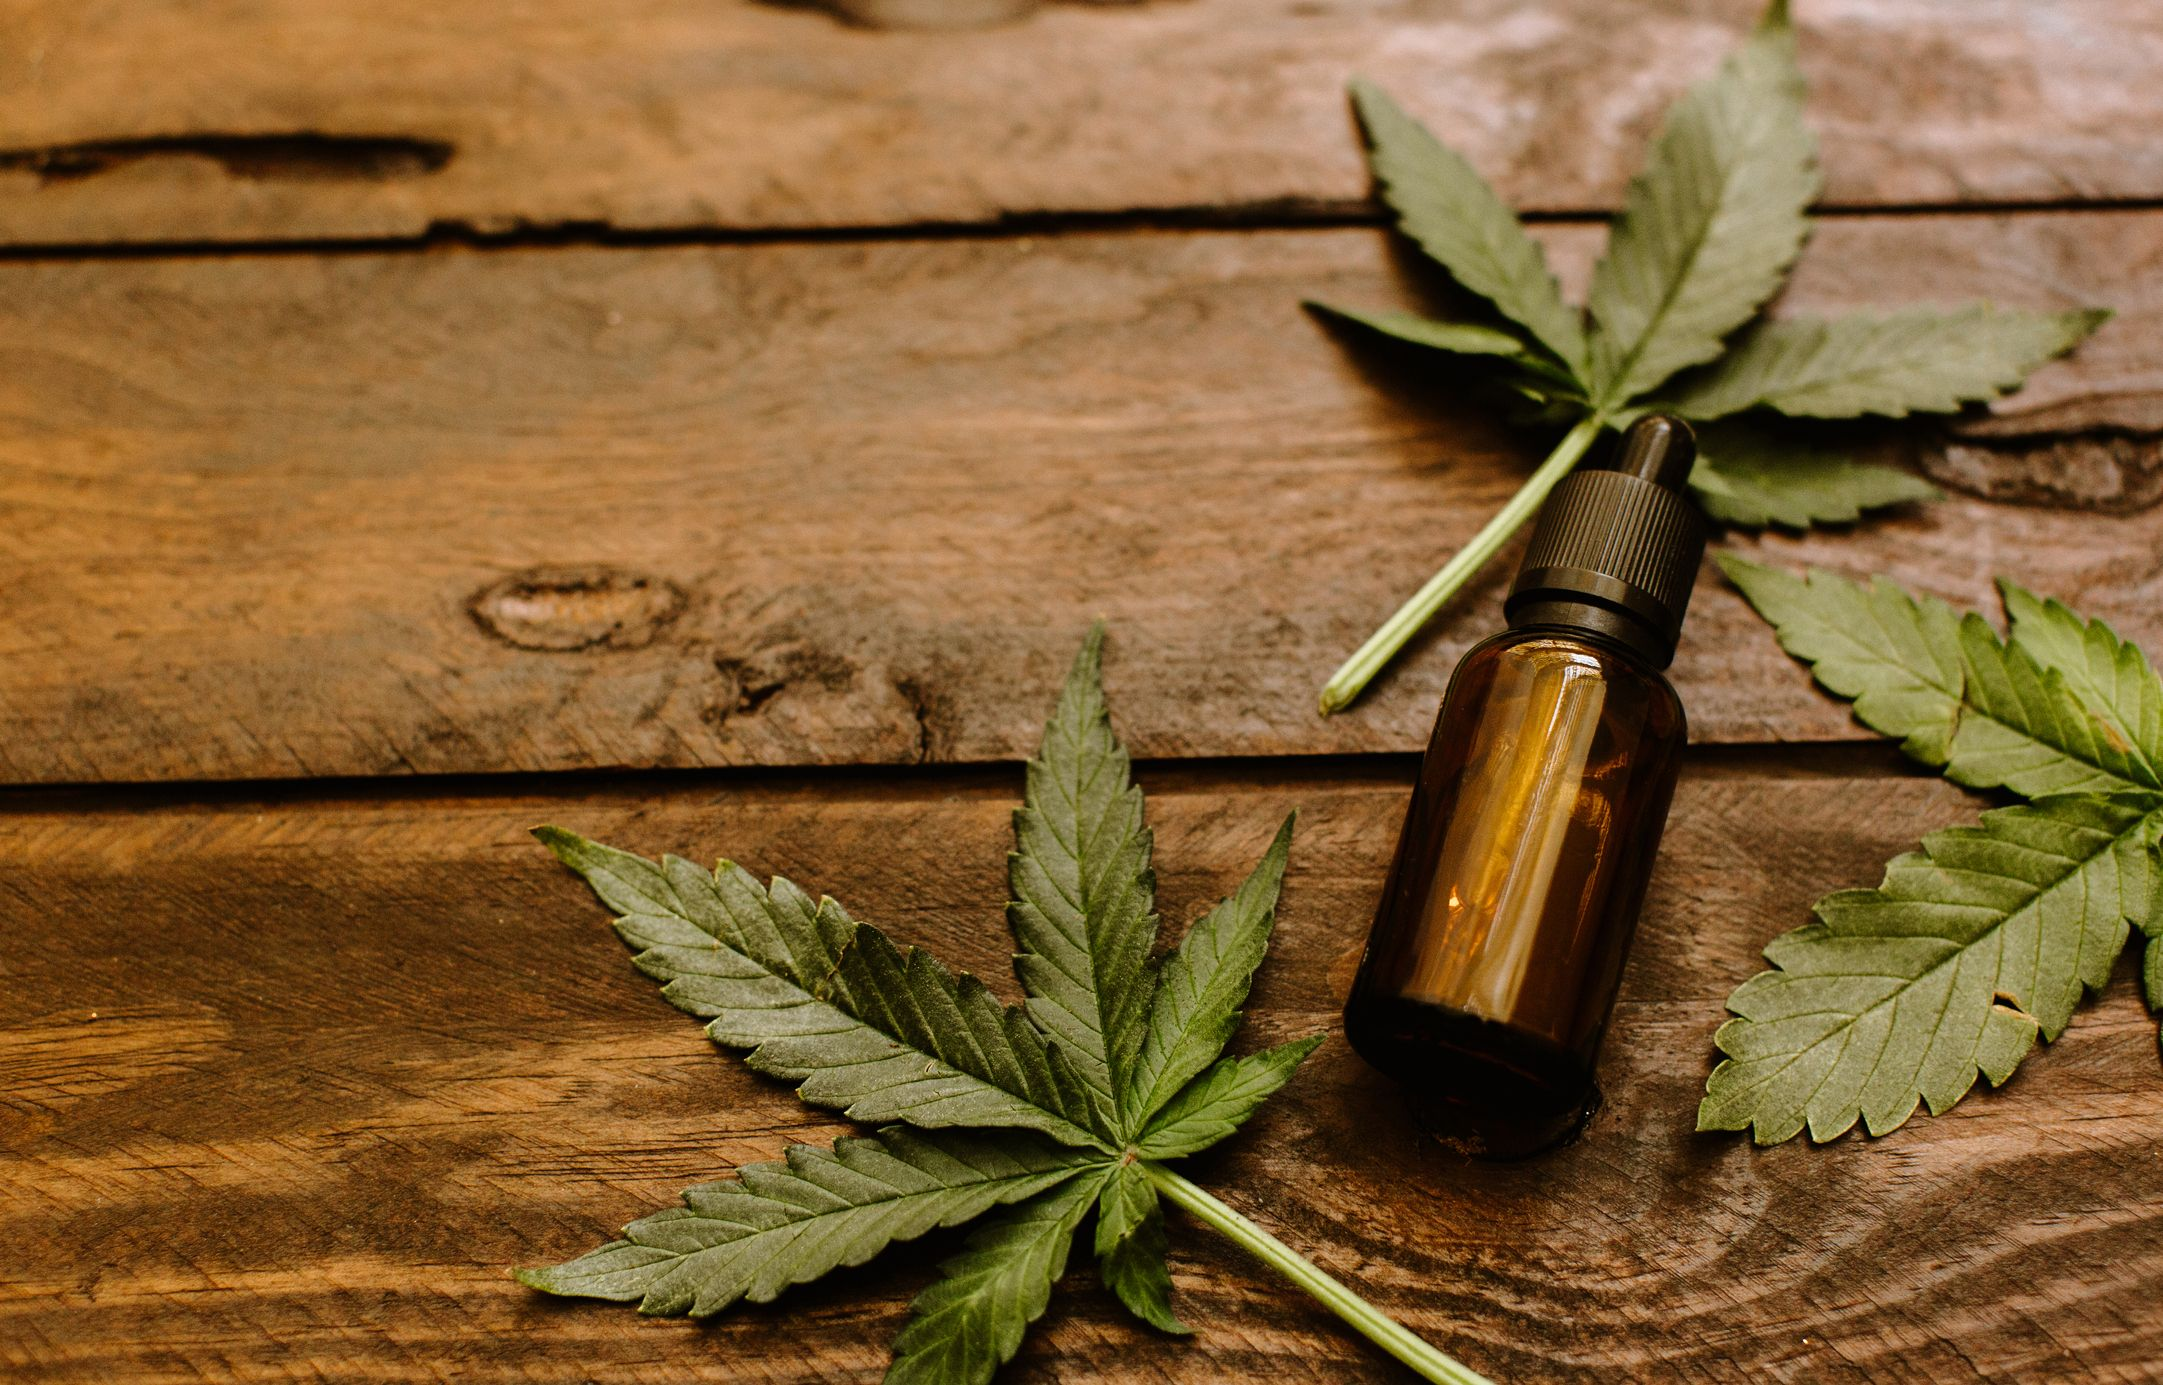 Cbd Oil The Facts Risks And Alternatives